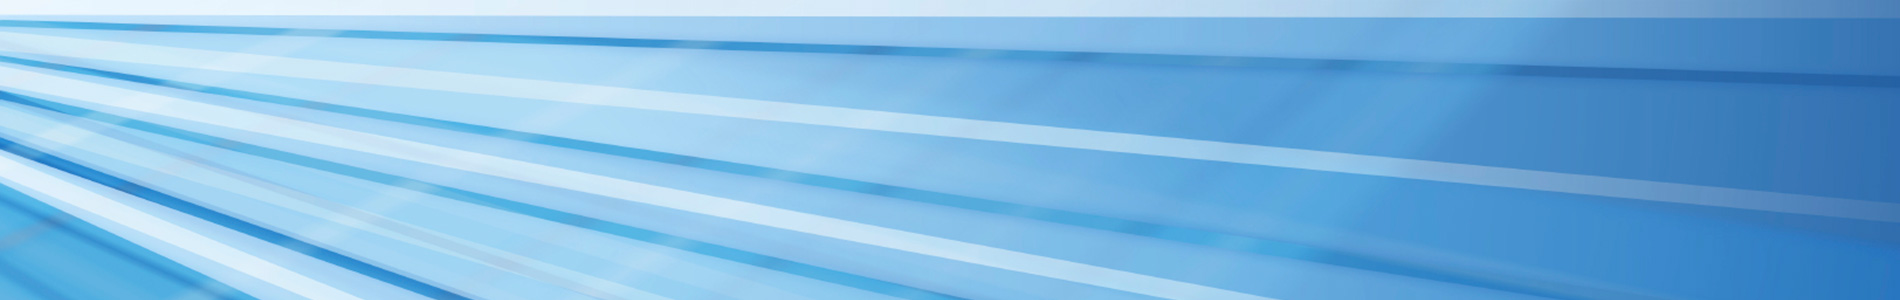 banner-blue-stripe-gradient